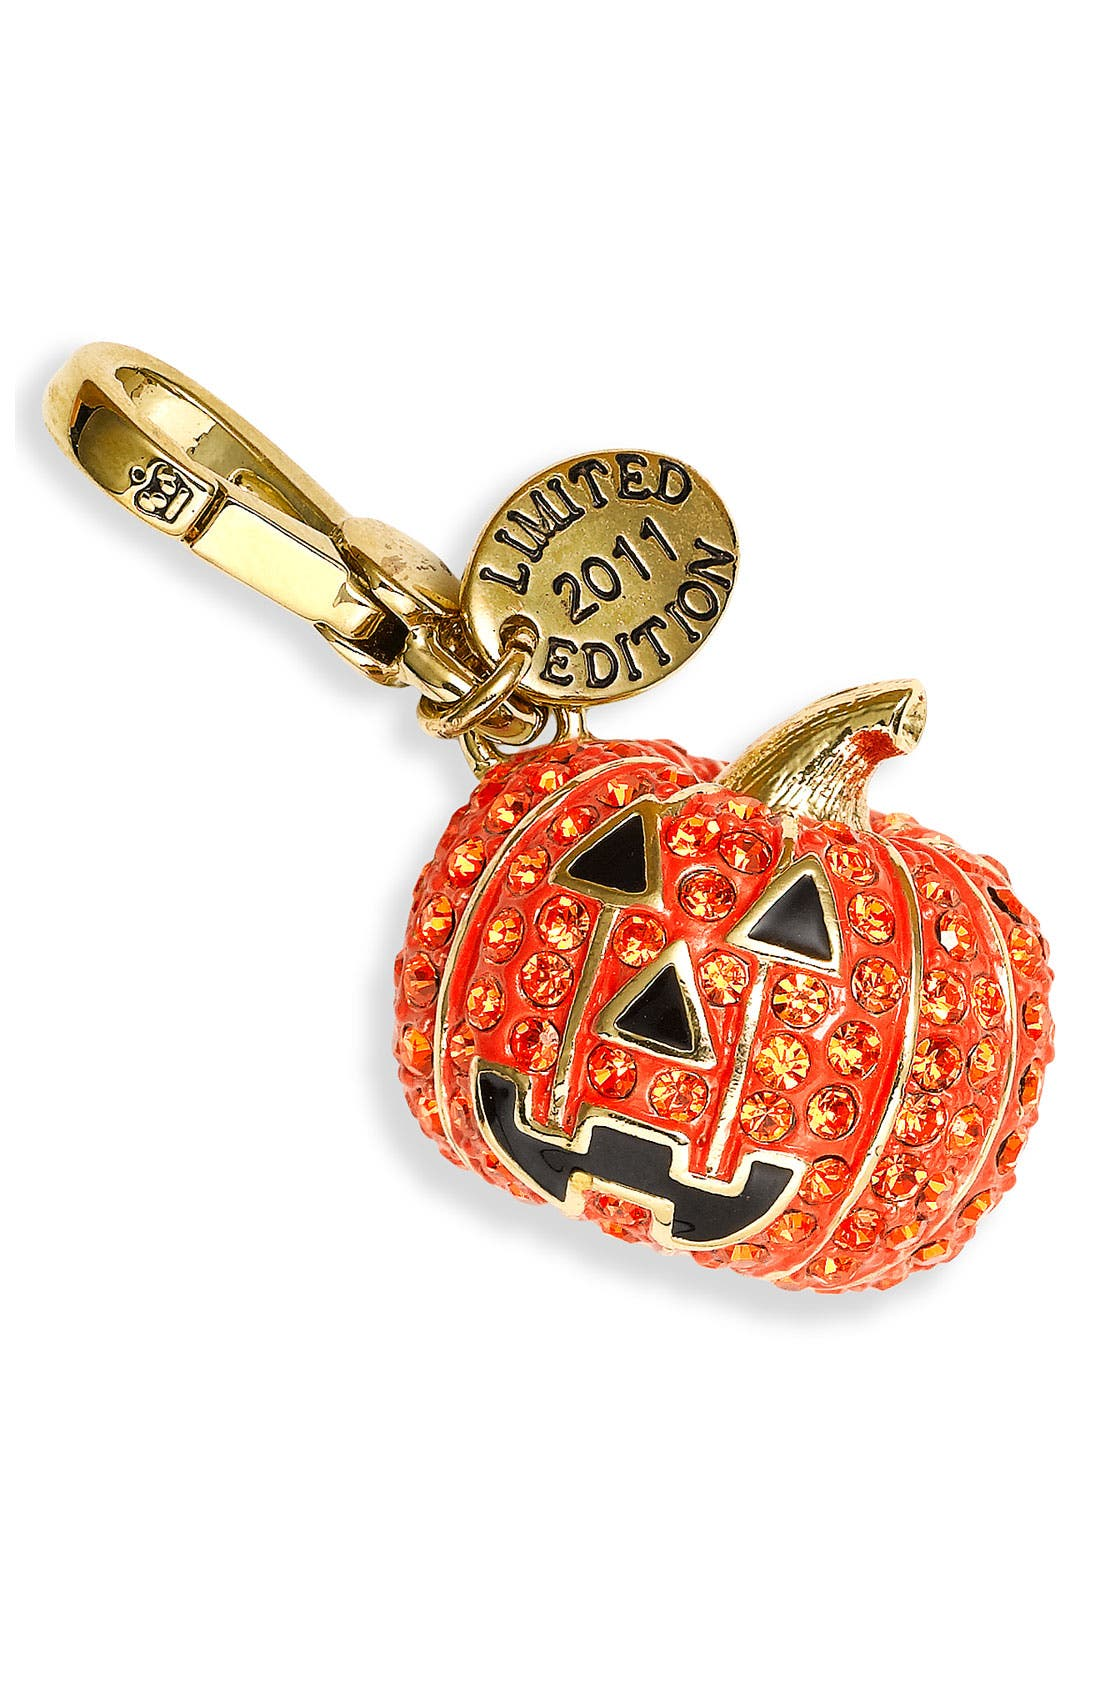 Alternate Image 1 Selected - Juicy Couture Pumpkin Charm (Limited Edition)